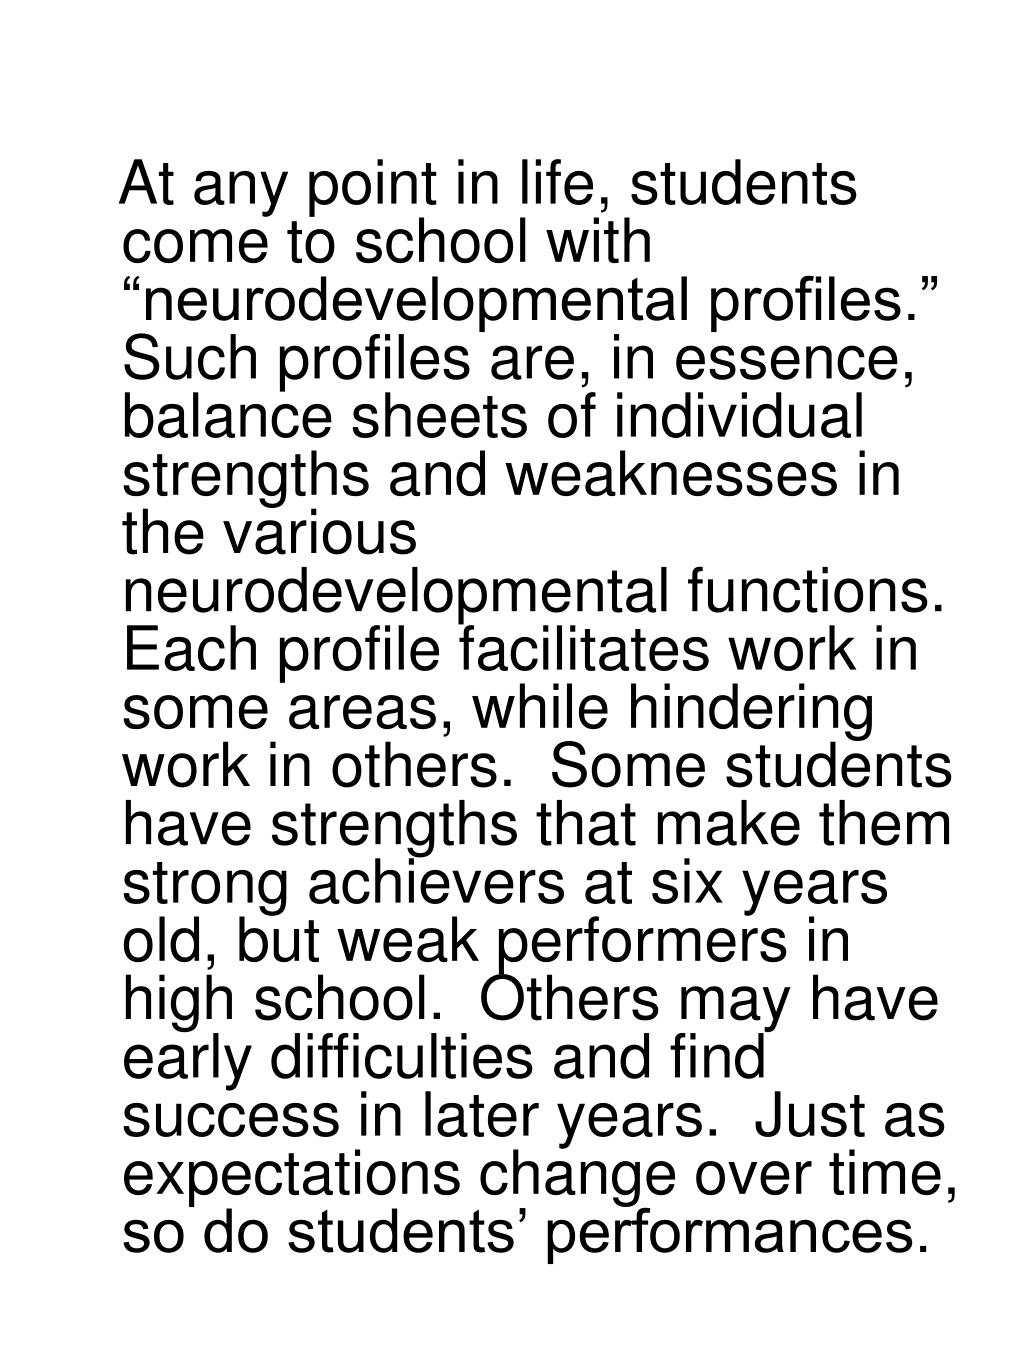 "At any point in life, students come to school with ""neurodevelopmental profiles.""  Such profiles are, in essence, balance sheets of individual strengths and weaknesses in the various neurodevelopmental functions. Each profile facilitates work in some areas, while hindering work in others.  Some students have strengths that make them strong achievers at six years old, but weak performers in high school.  Others may have early difficulties and find  success in later years.  Just as expectations change over time, so do students' performances."